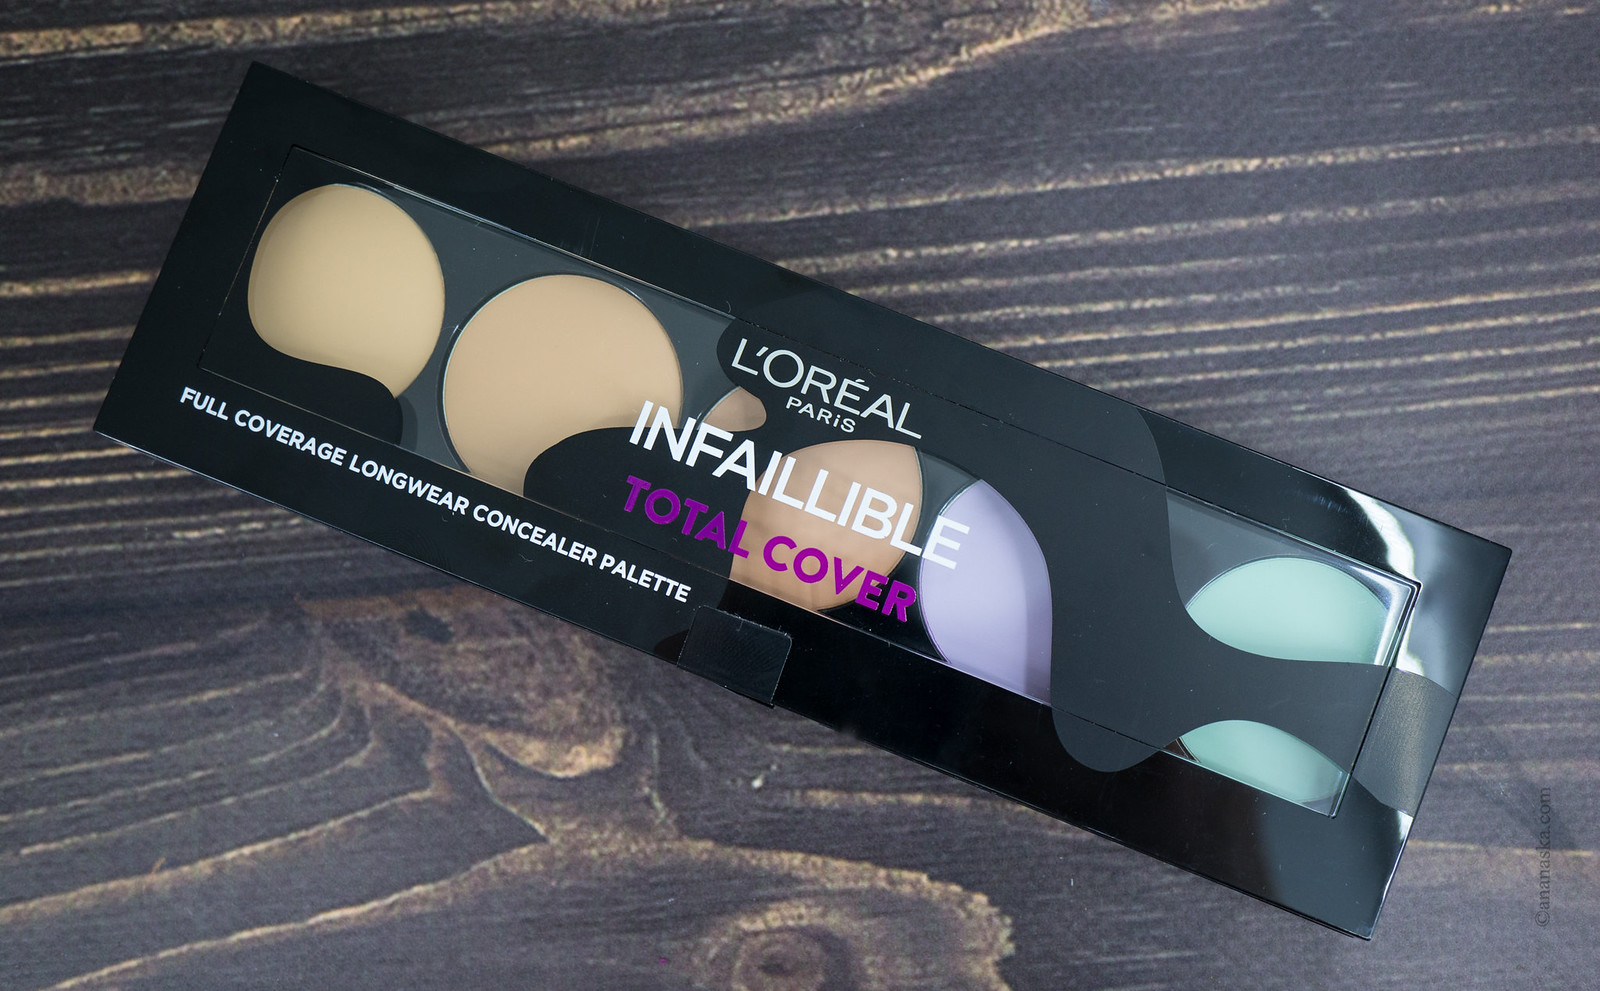 L'Oreal Paris Infaillible Total Cover Concealer Palette